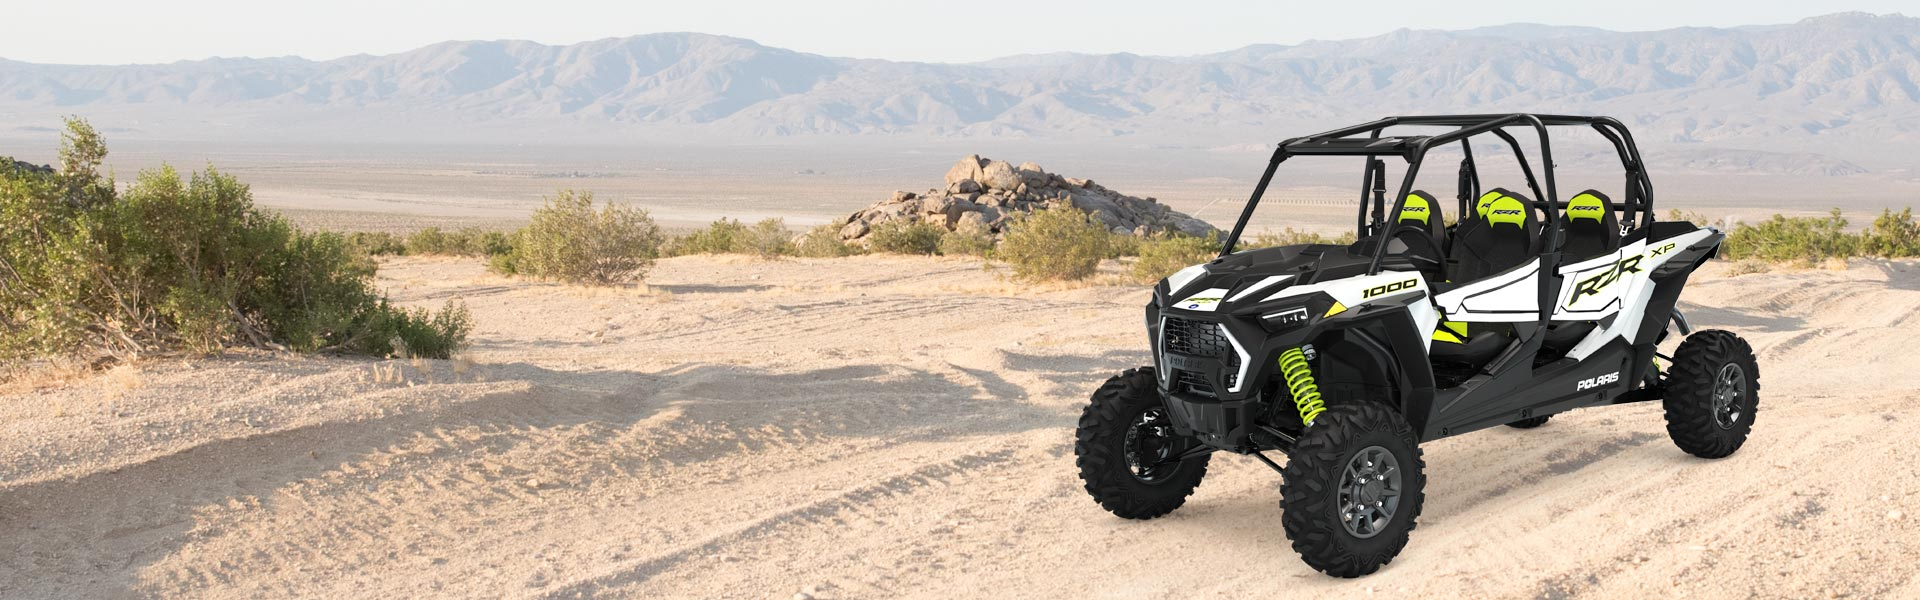 polaris-rzr-xp-4-1000